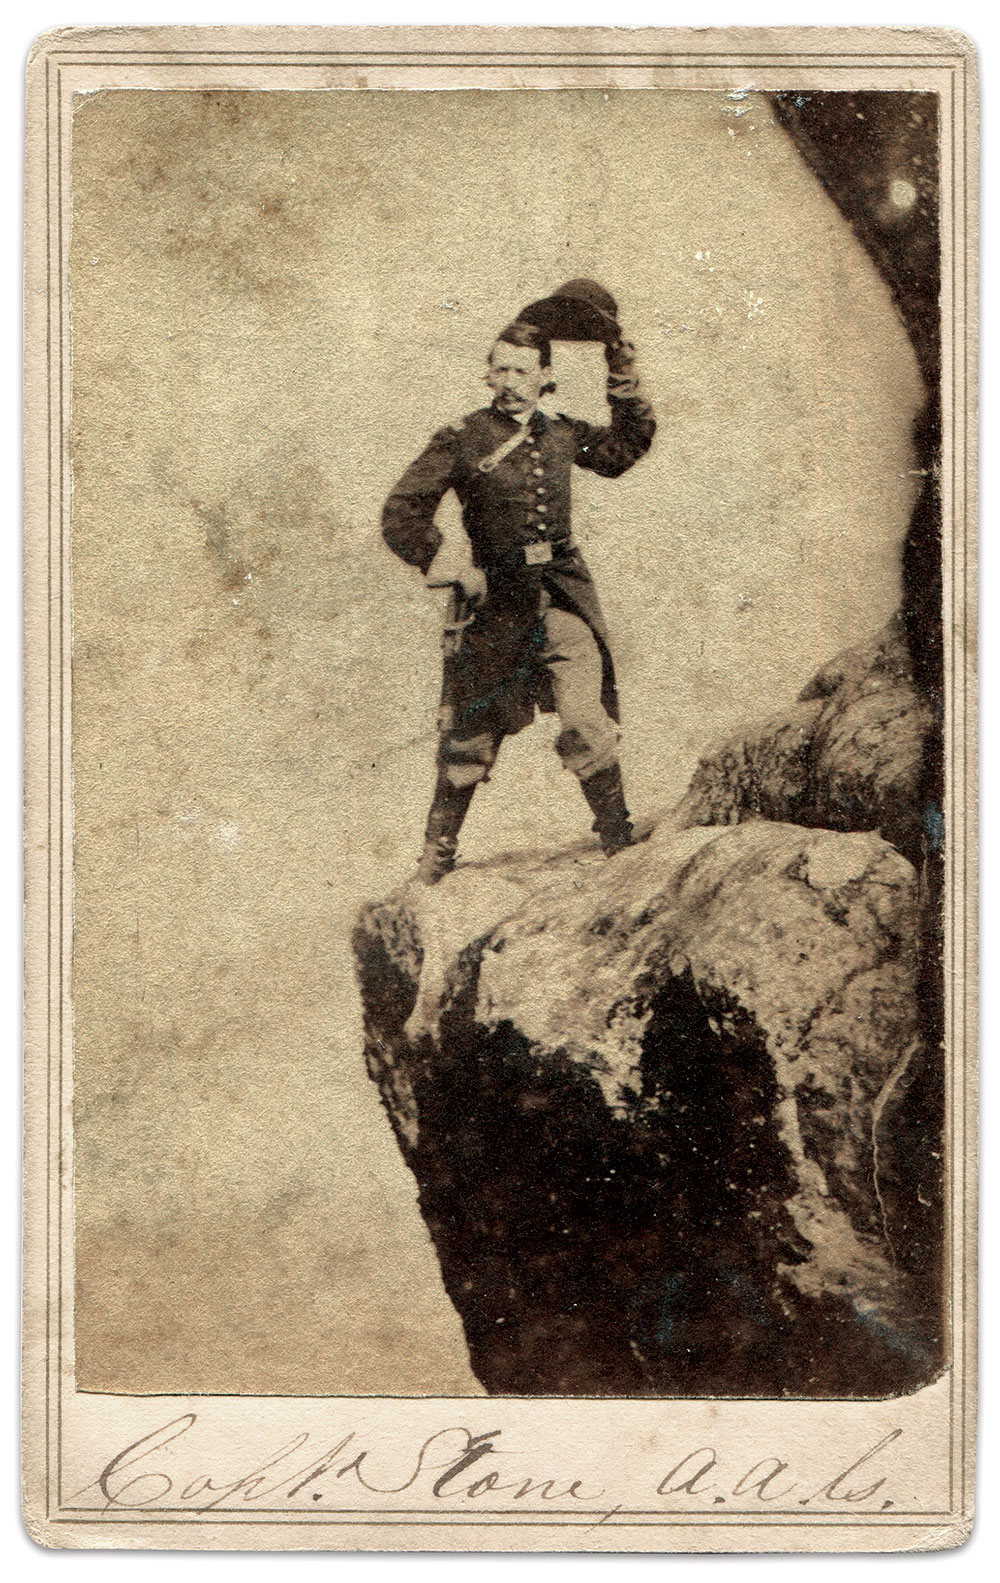 Carte de visite by Army of the Cumberland photographers Schwing & Rudd. Steven Karnes Collection.